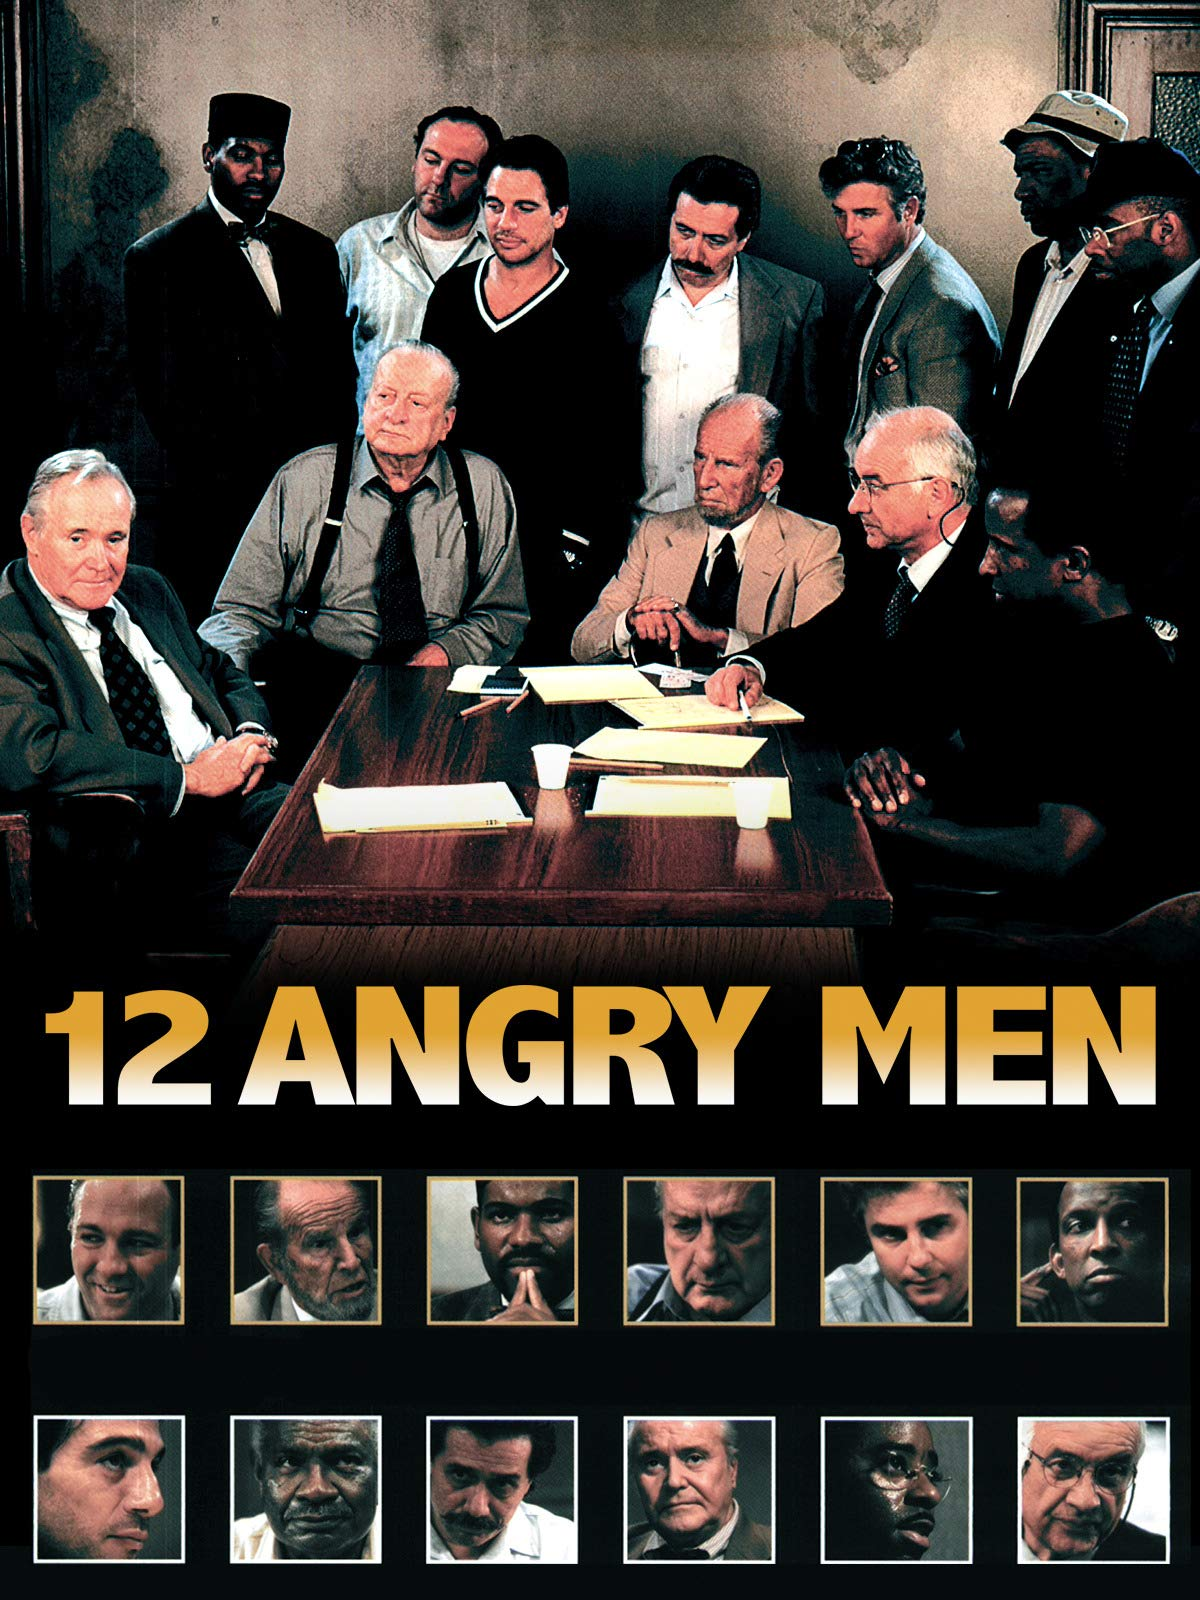 12 angry men cast